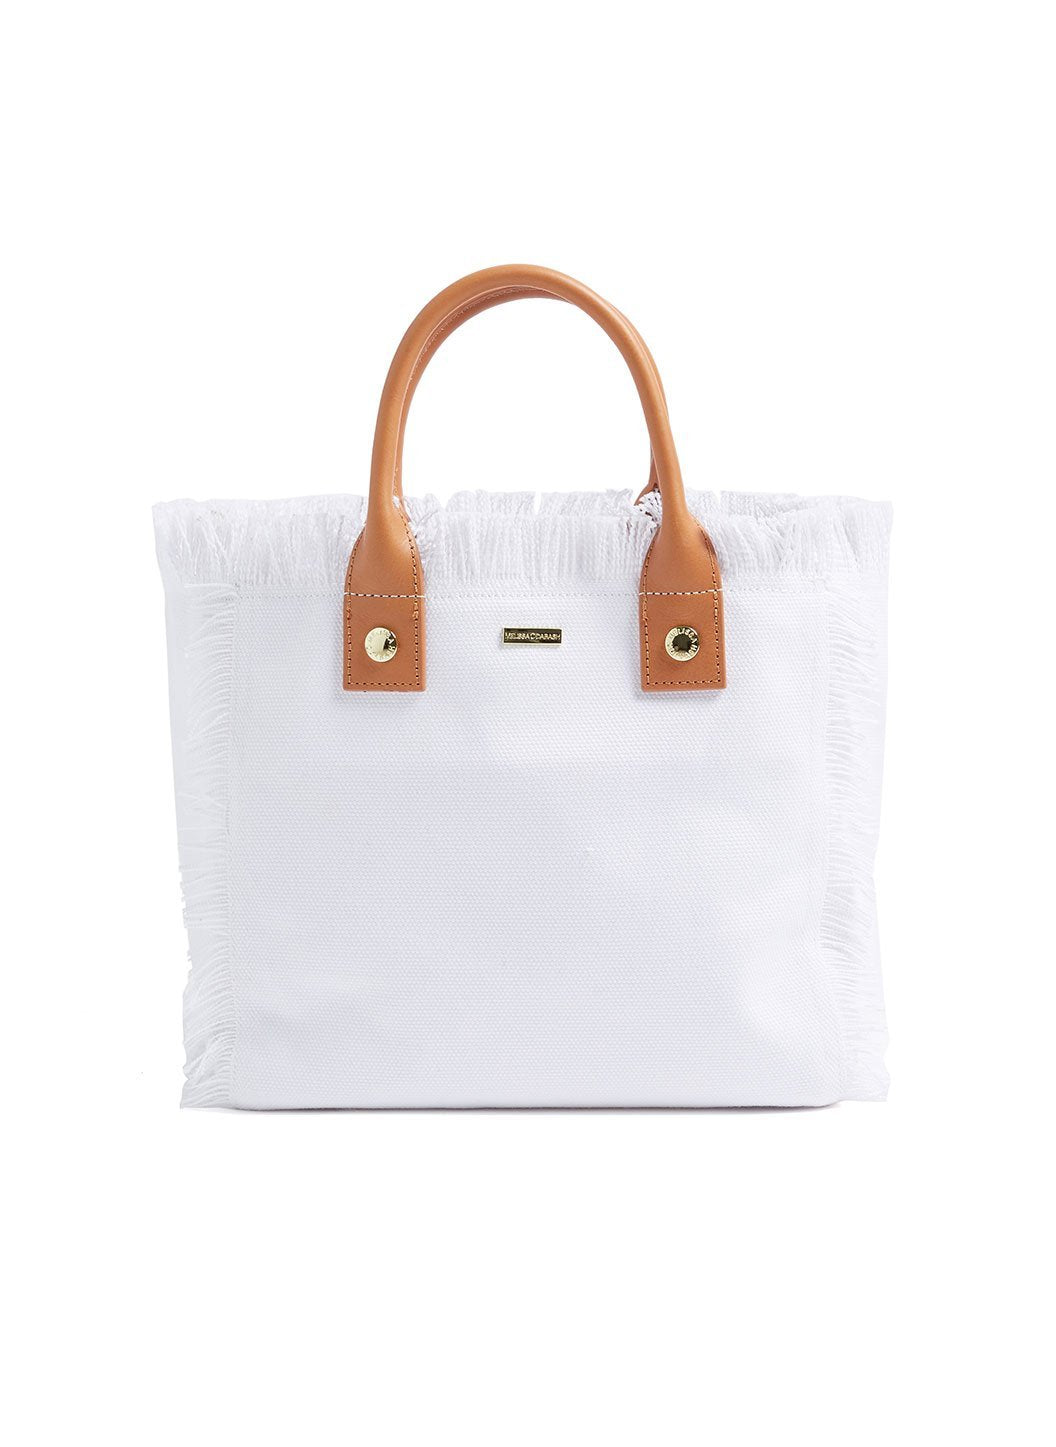 porto cervo mini beach tote white 2018